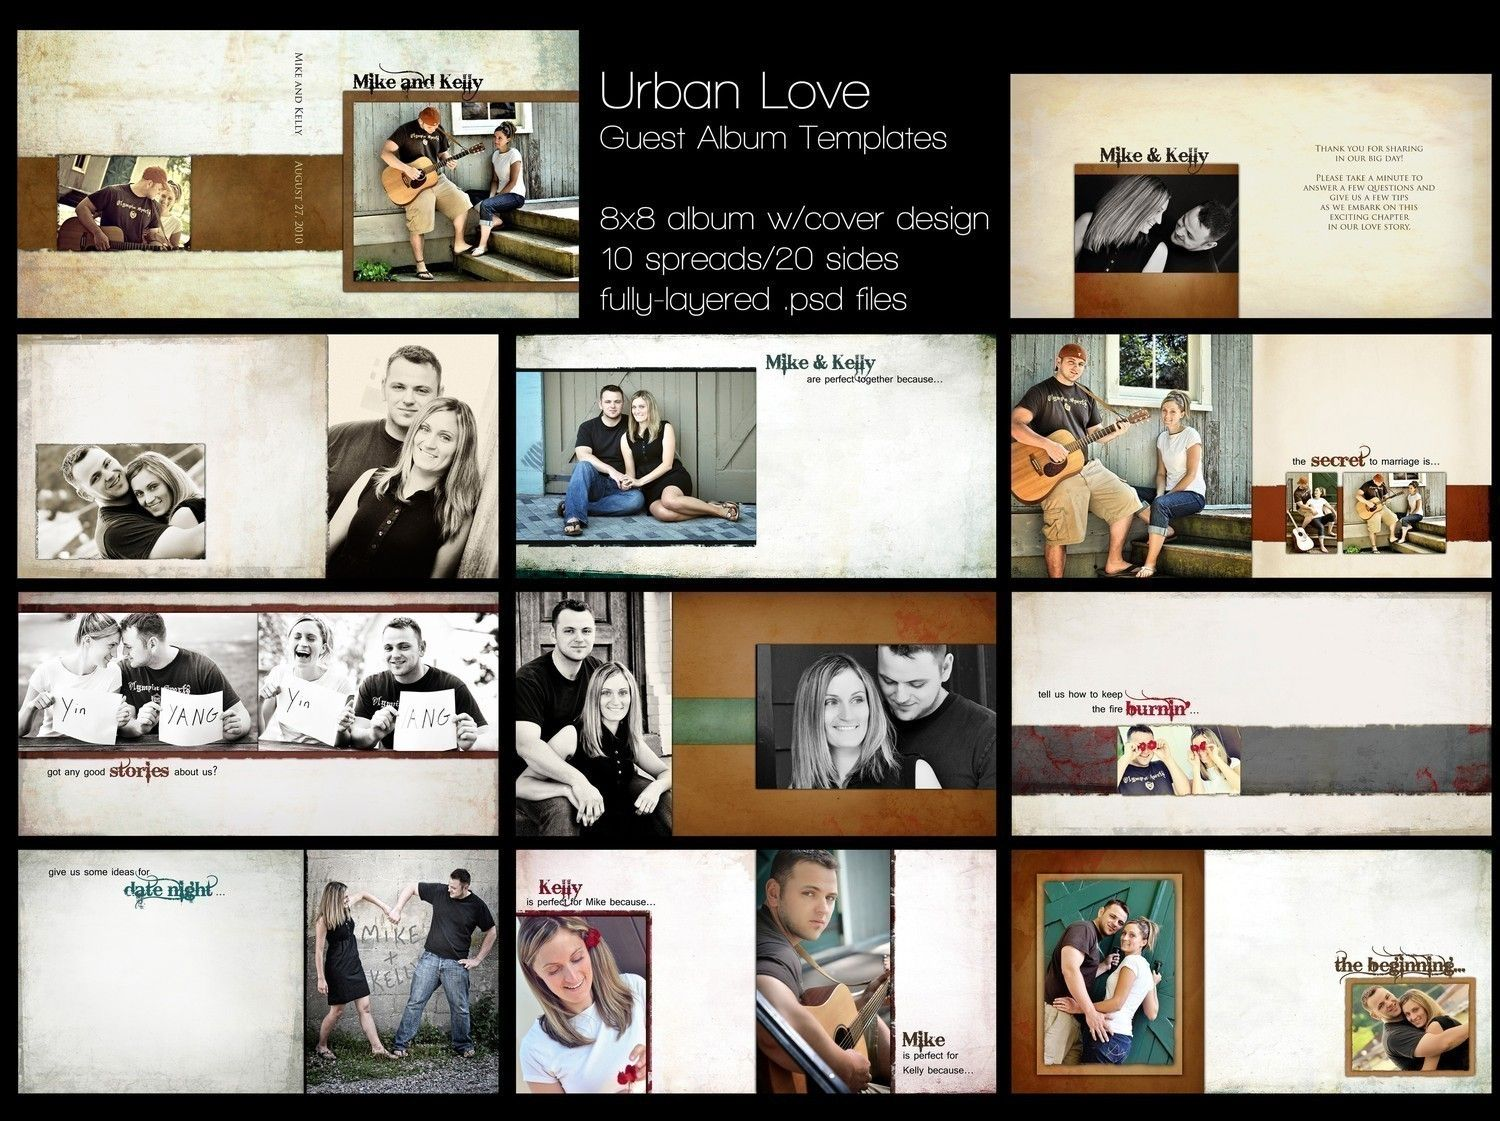 Urban love wedding guest book album template for for Wedding photo album templates in photoshop